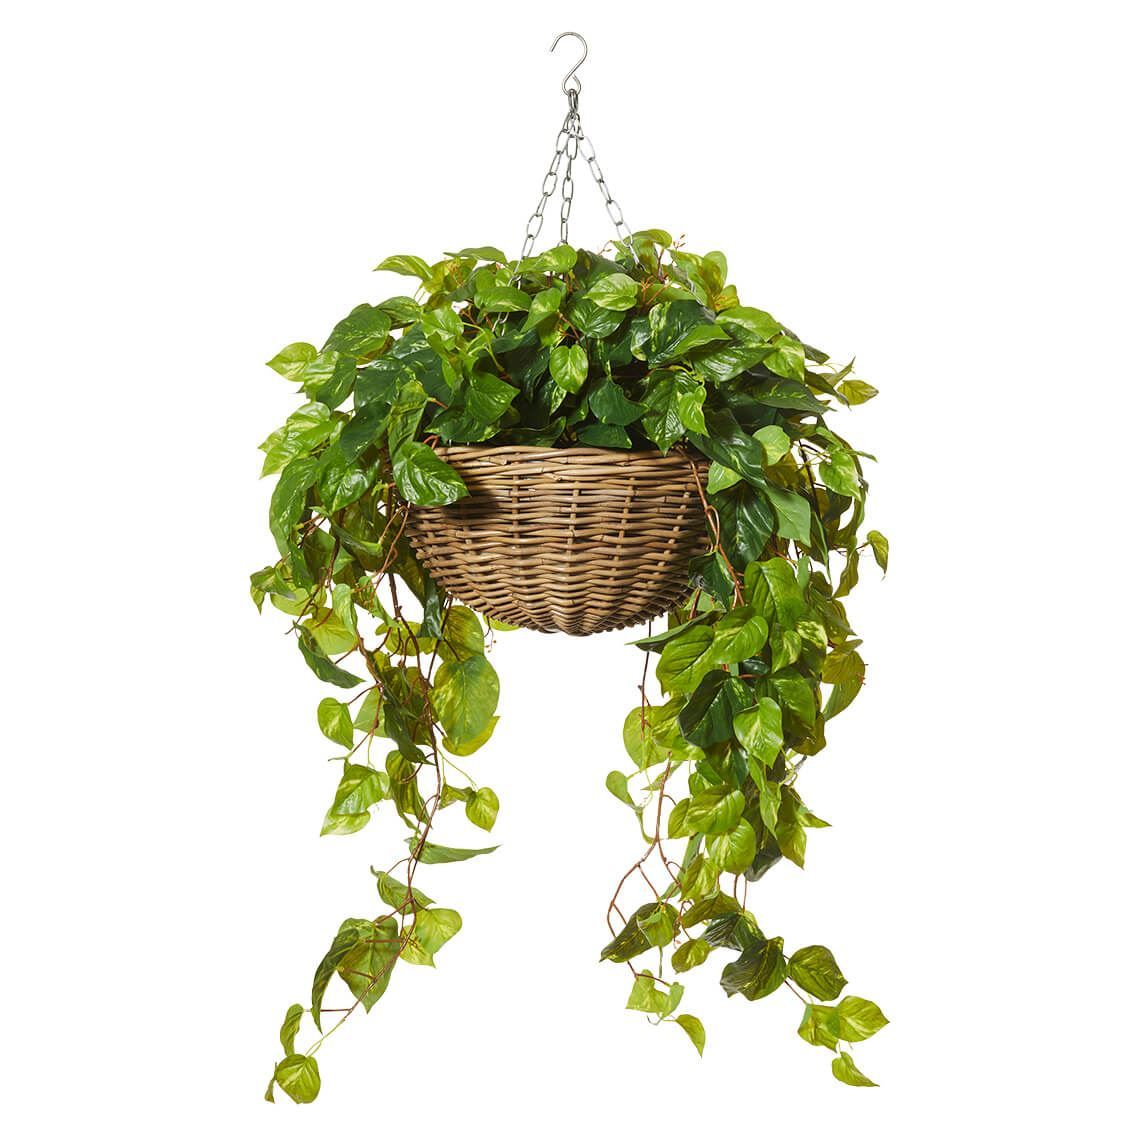 Rattan Hanging Bowl And Artificial Plant Size W 60cm x D 60cm x H 110cm in Green Plastic/Wood Freedom